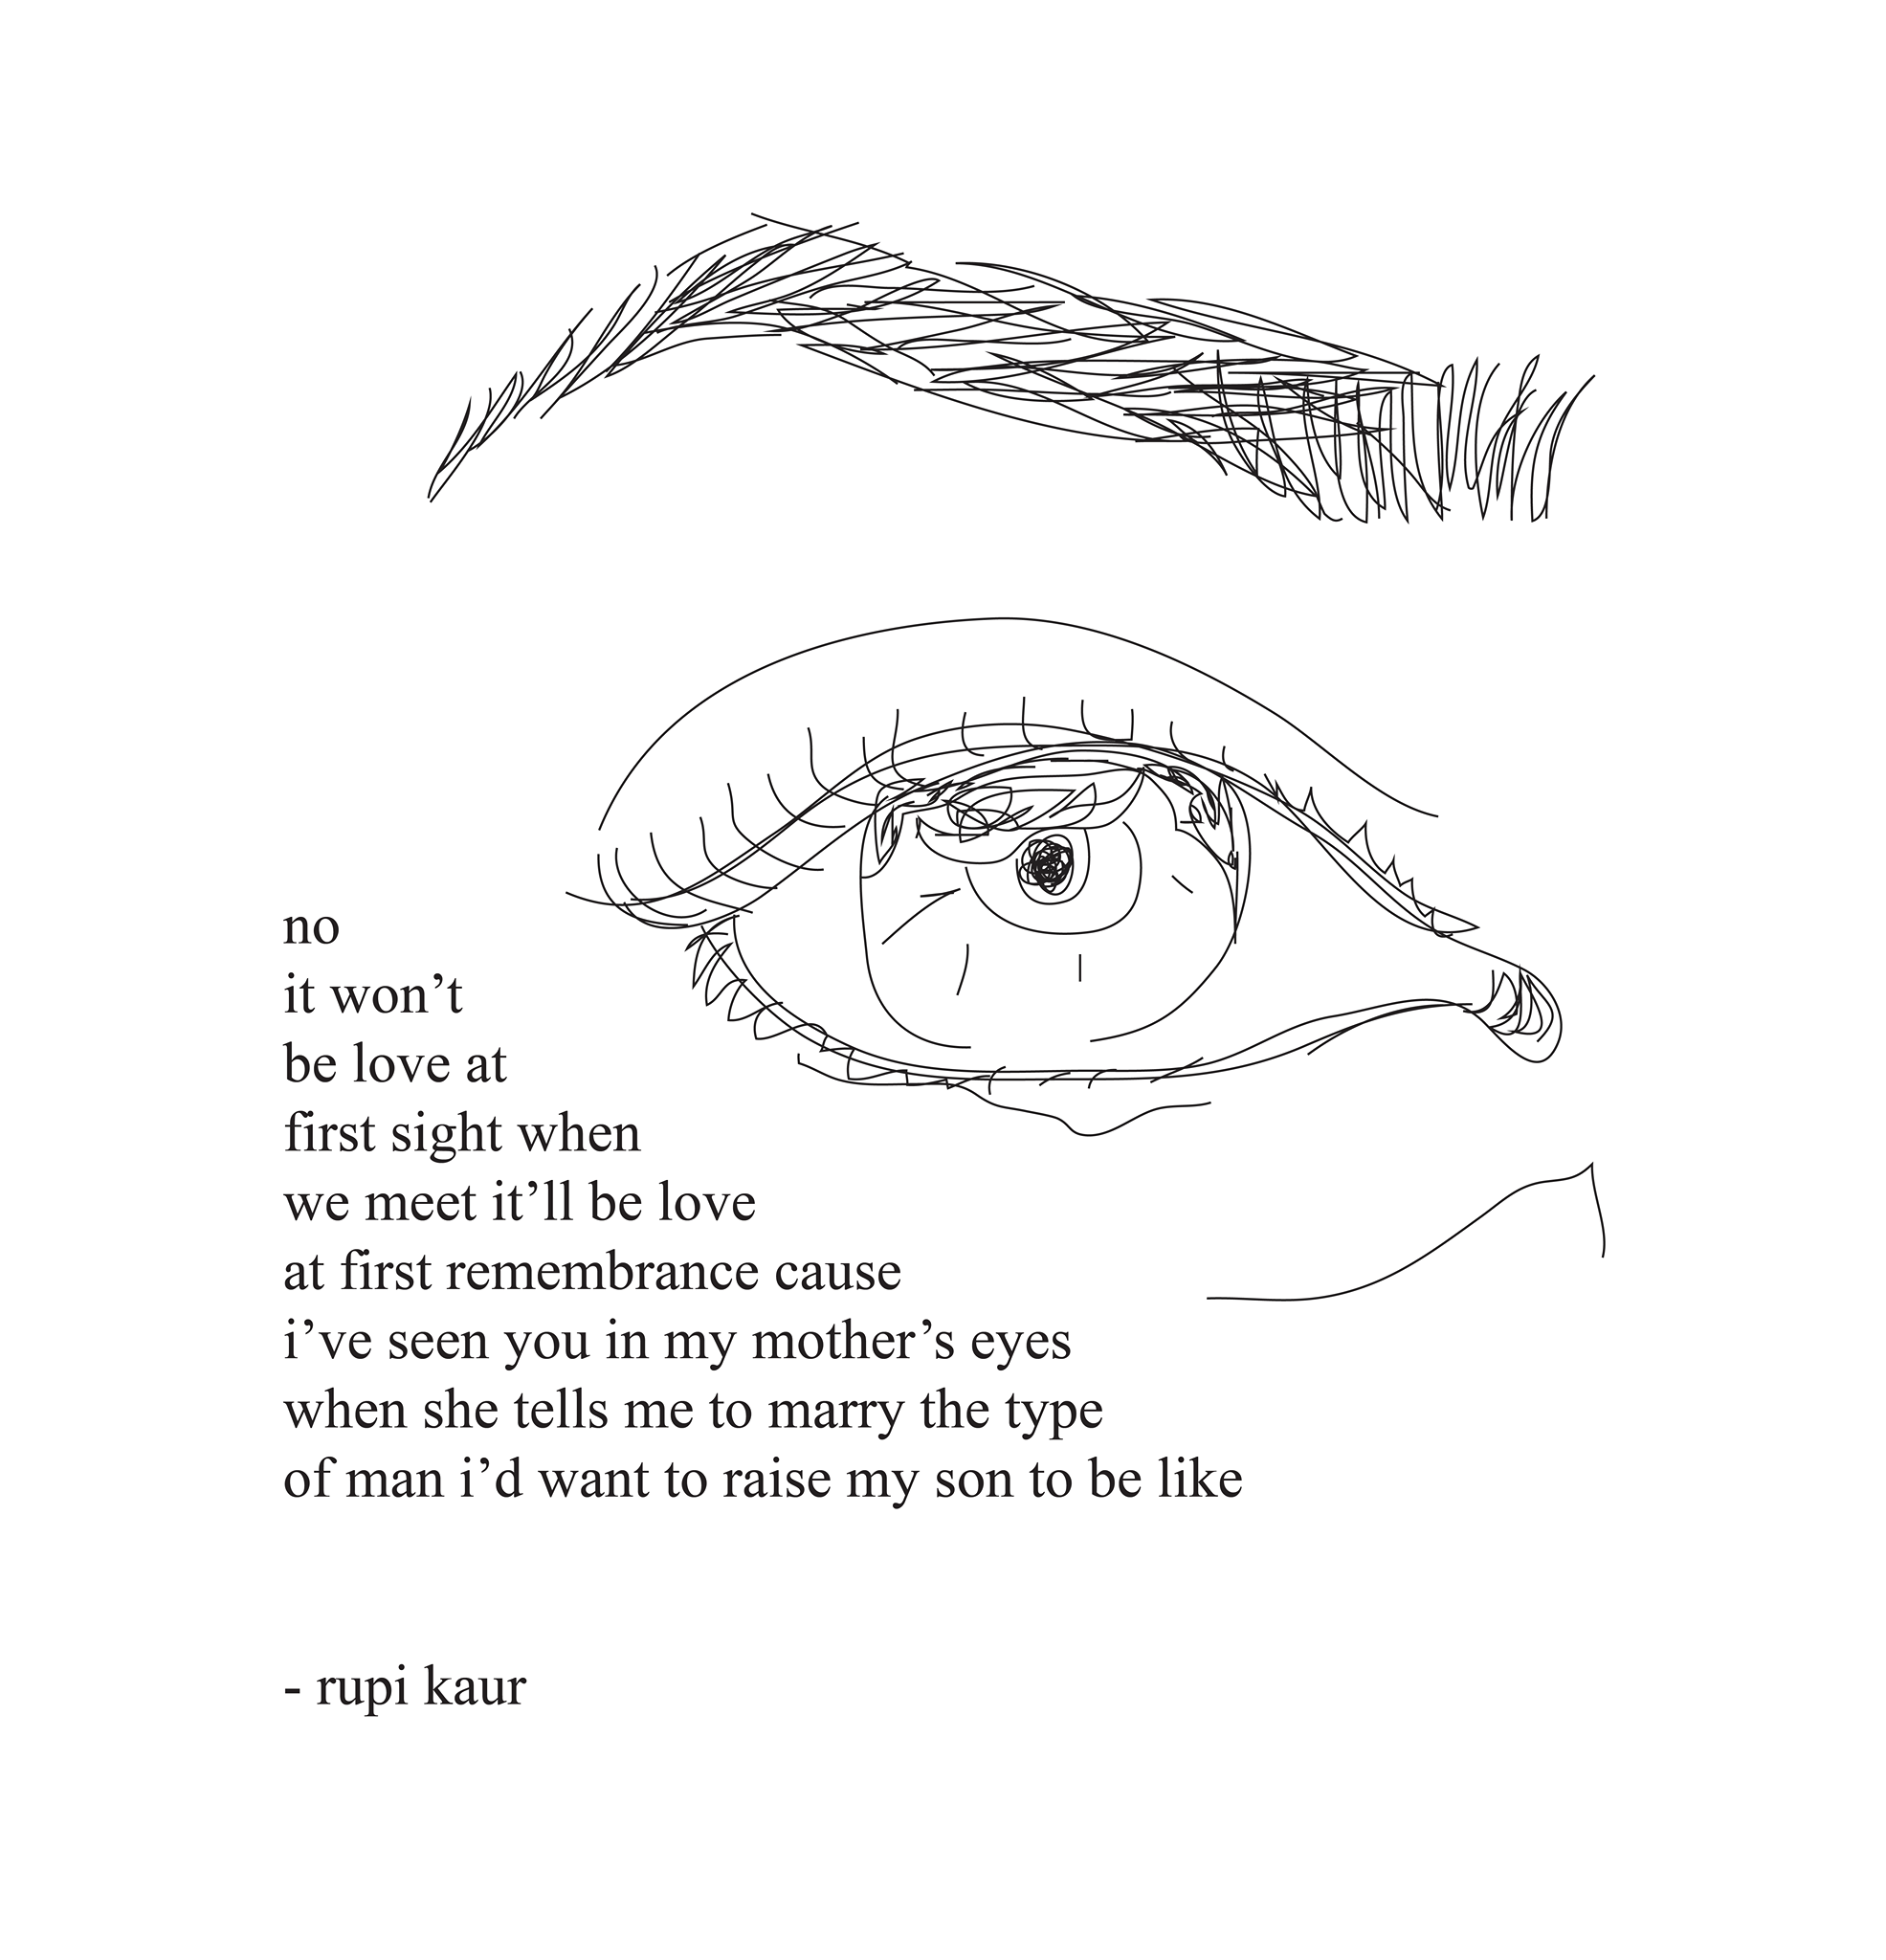 no it won't be love at first sight when we meet it'll be love at first remembrance cause i've seen you in my mother's eyes when she tells me to marry the type of man i'd want to raise my son to be like - rupi kaur #Rupi_Kaur #Milk_and_Honey #poetry